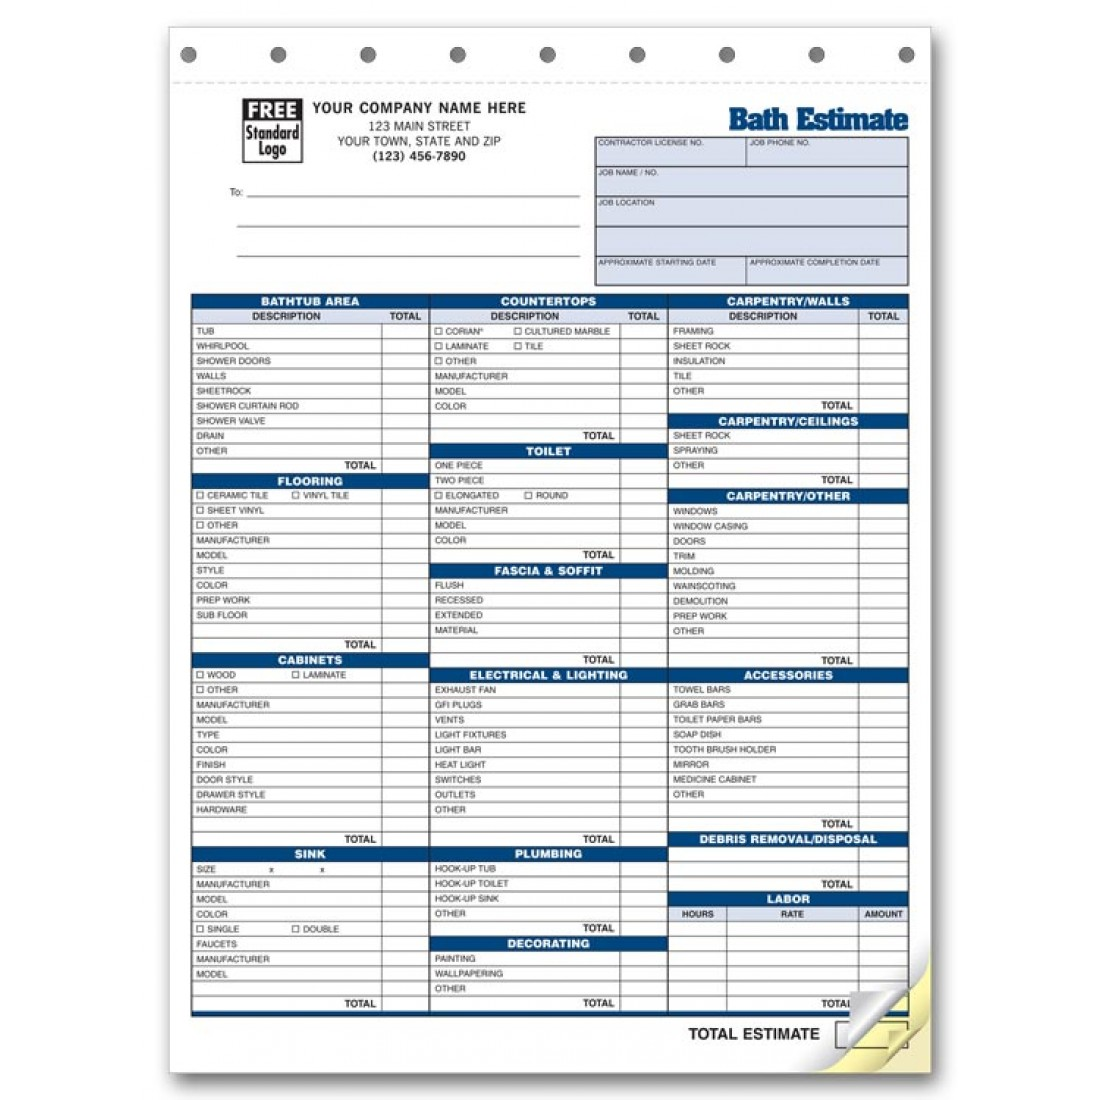 Detailed labor and parts auto estimate forms 5537 at print for Bathroom estimate